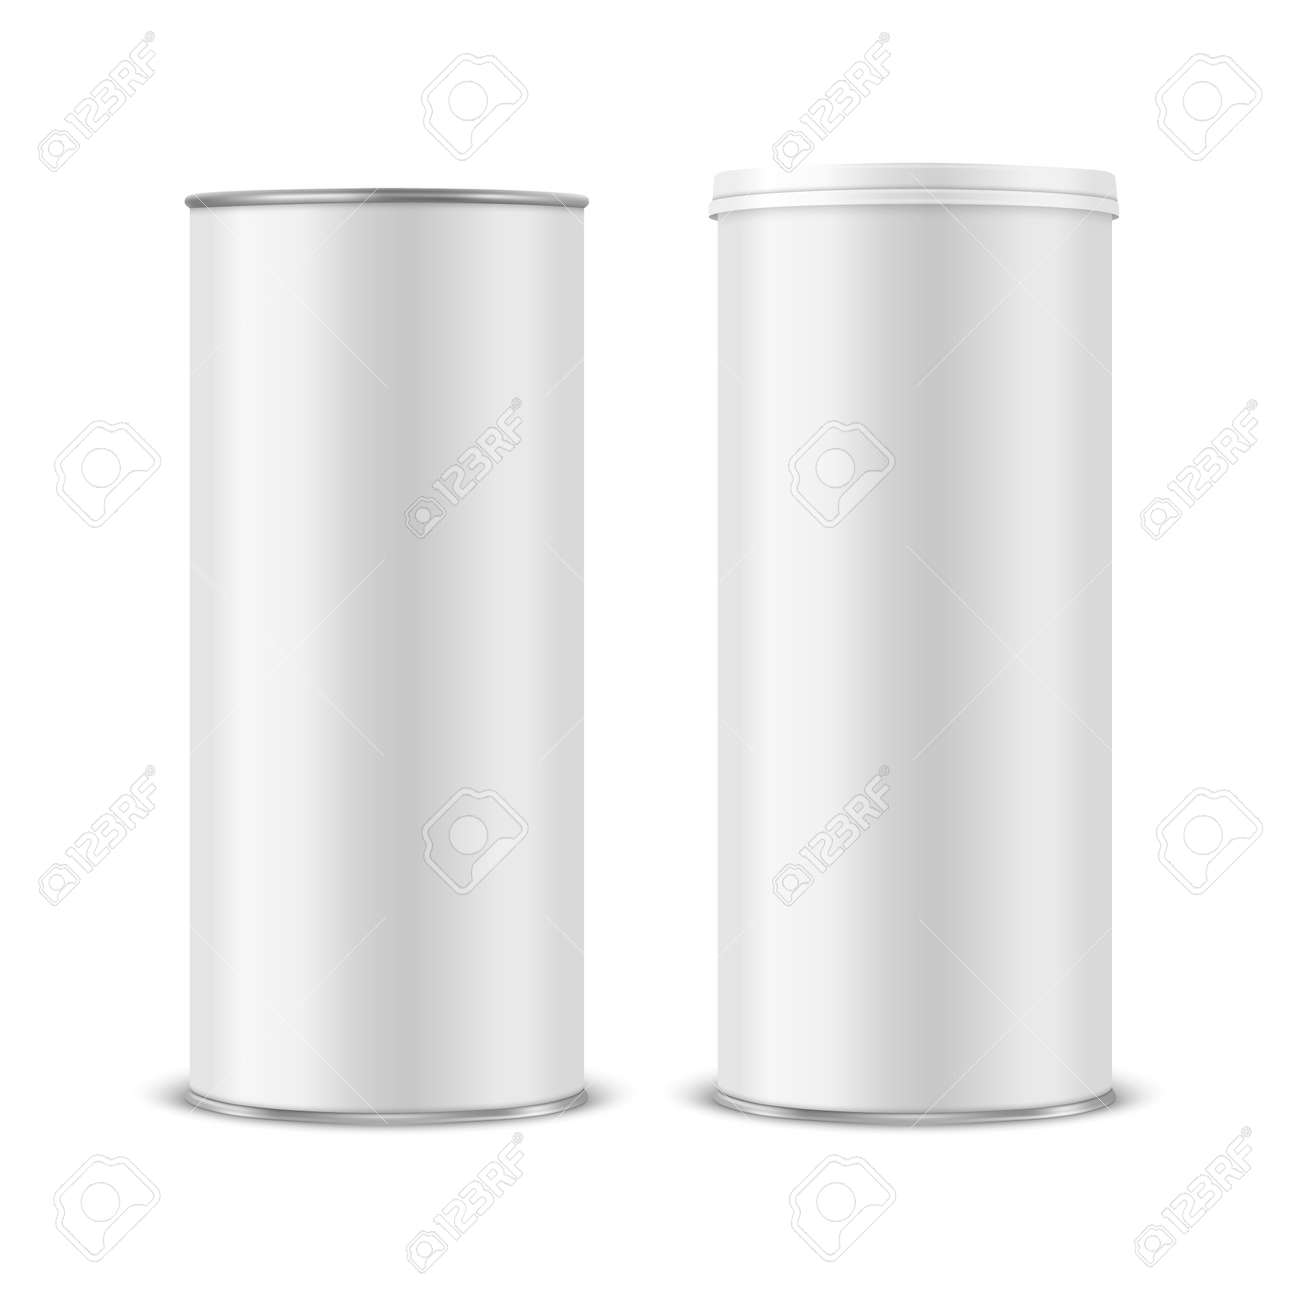 Vector 3d Realistic Blank White Metal Tin Can, Canned Food, Potato Chips Packaging With Lid Set Isolated On White Background. Medium Size. Design Template, Mockup. Front View - 169580851